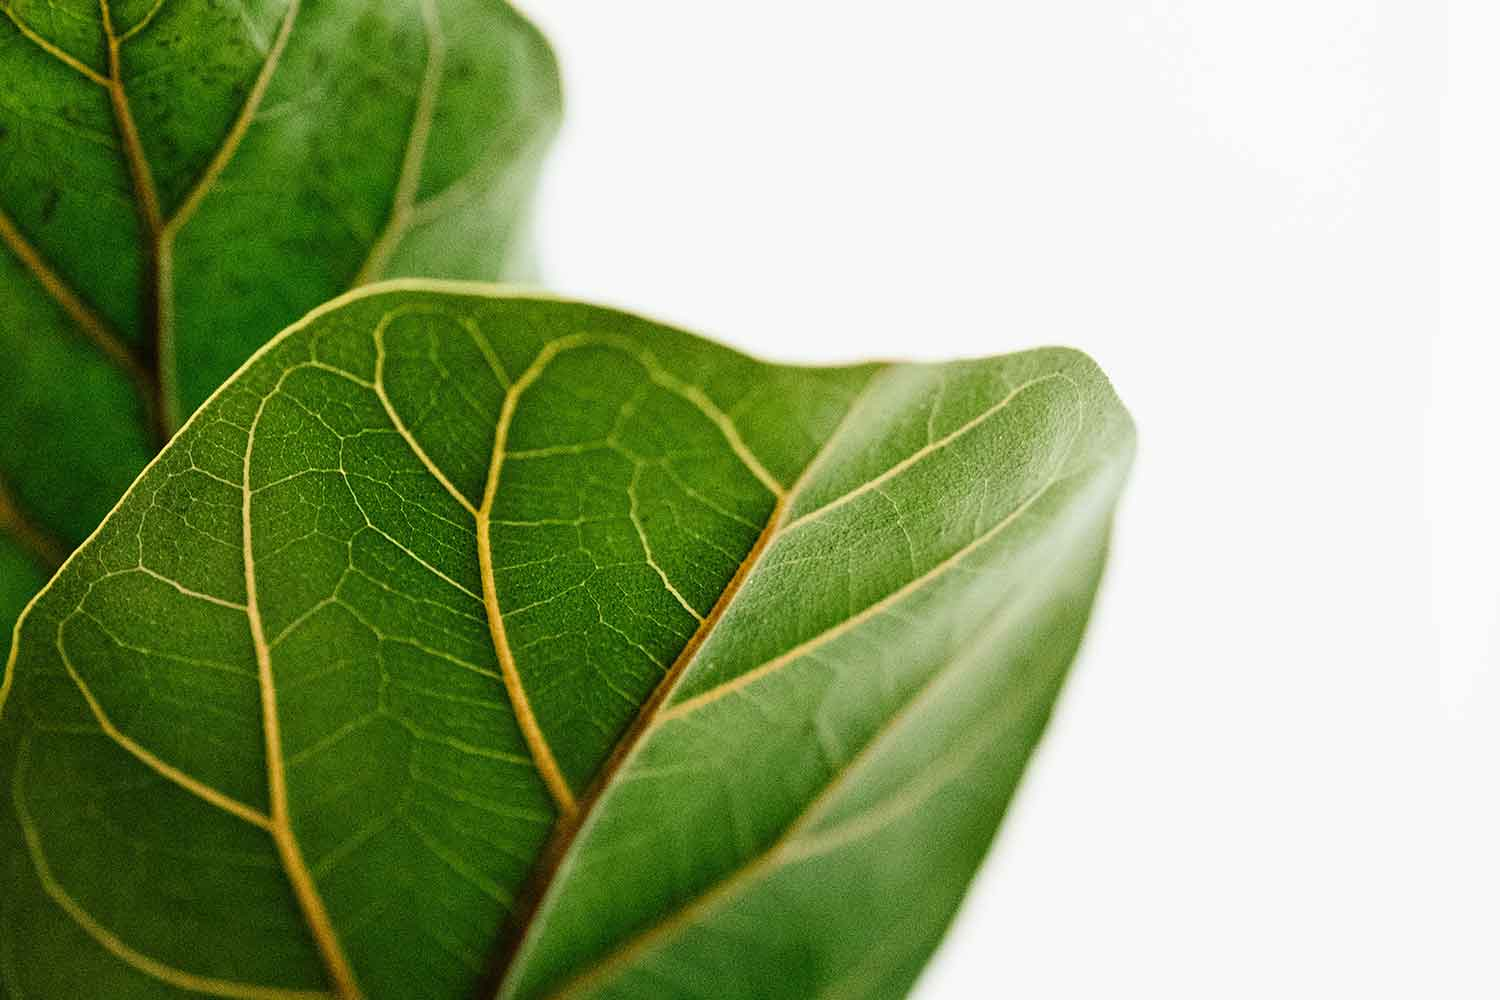 Why you should avoid moving your fiddle-leaf fig | Better Homes and Gardens